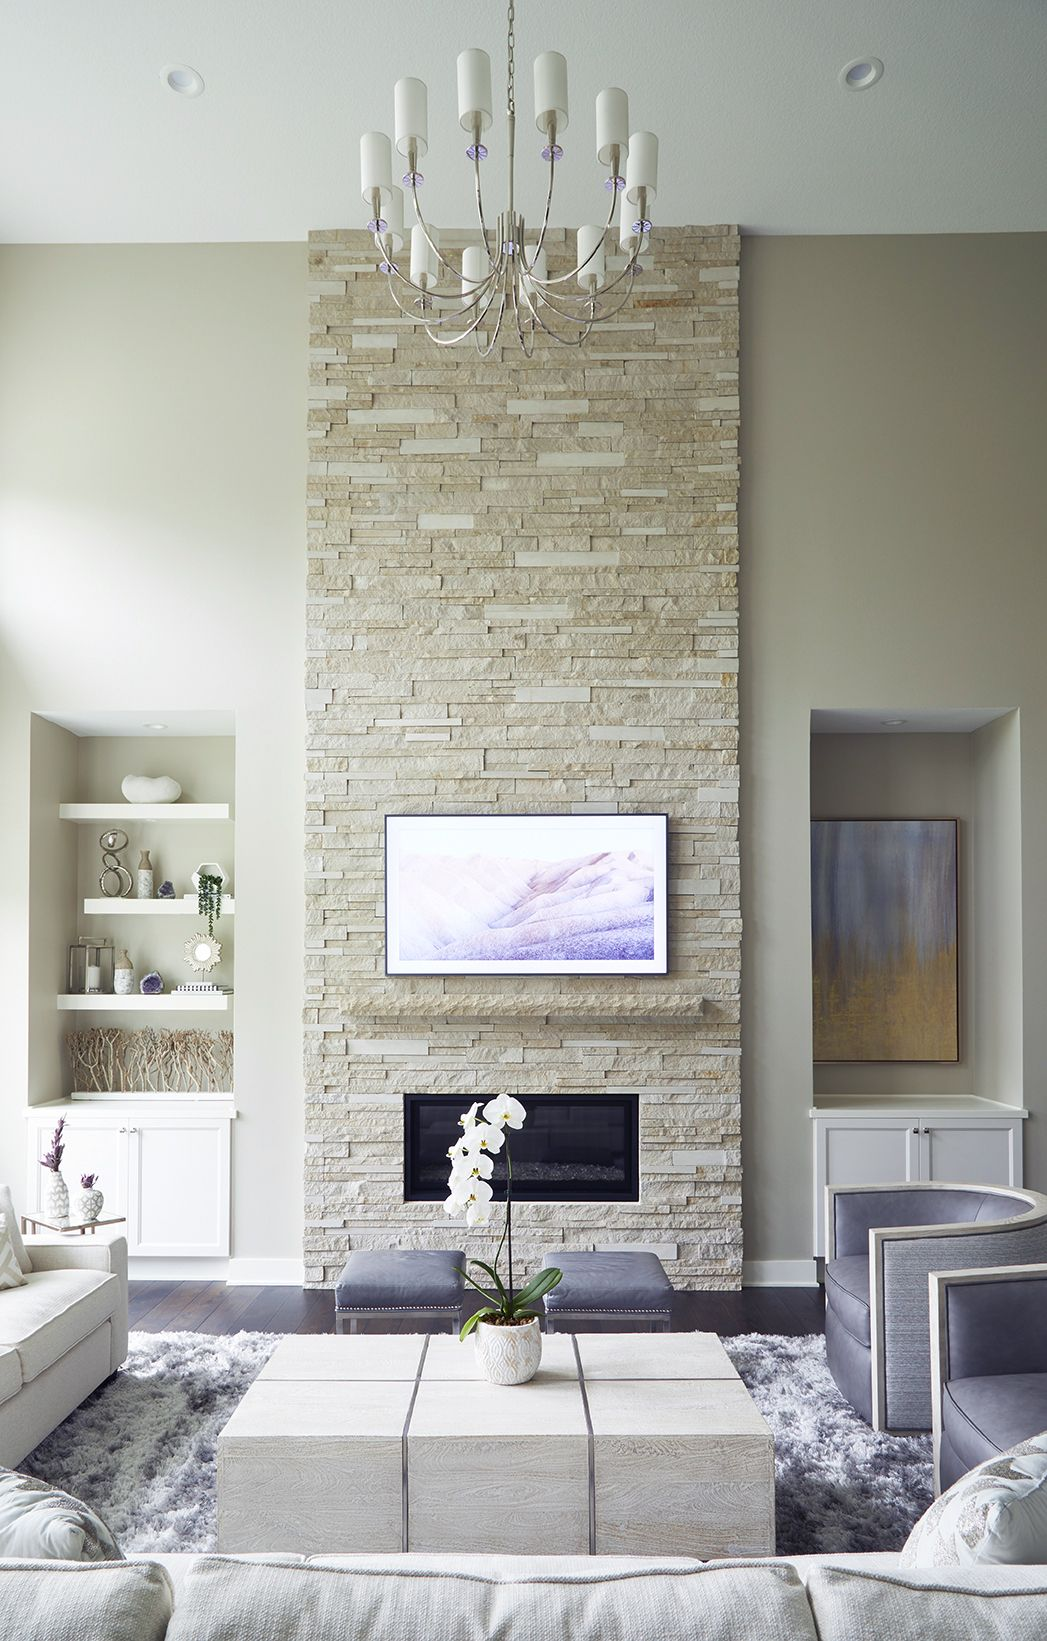 Transitional Living Room Design With Stacked Stone Fireplace And Dark Hickory Floors By Jillian Lare Interior Des Moines Iowa